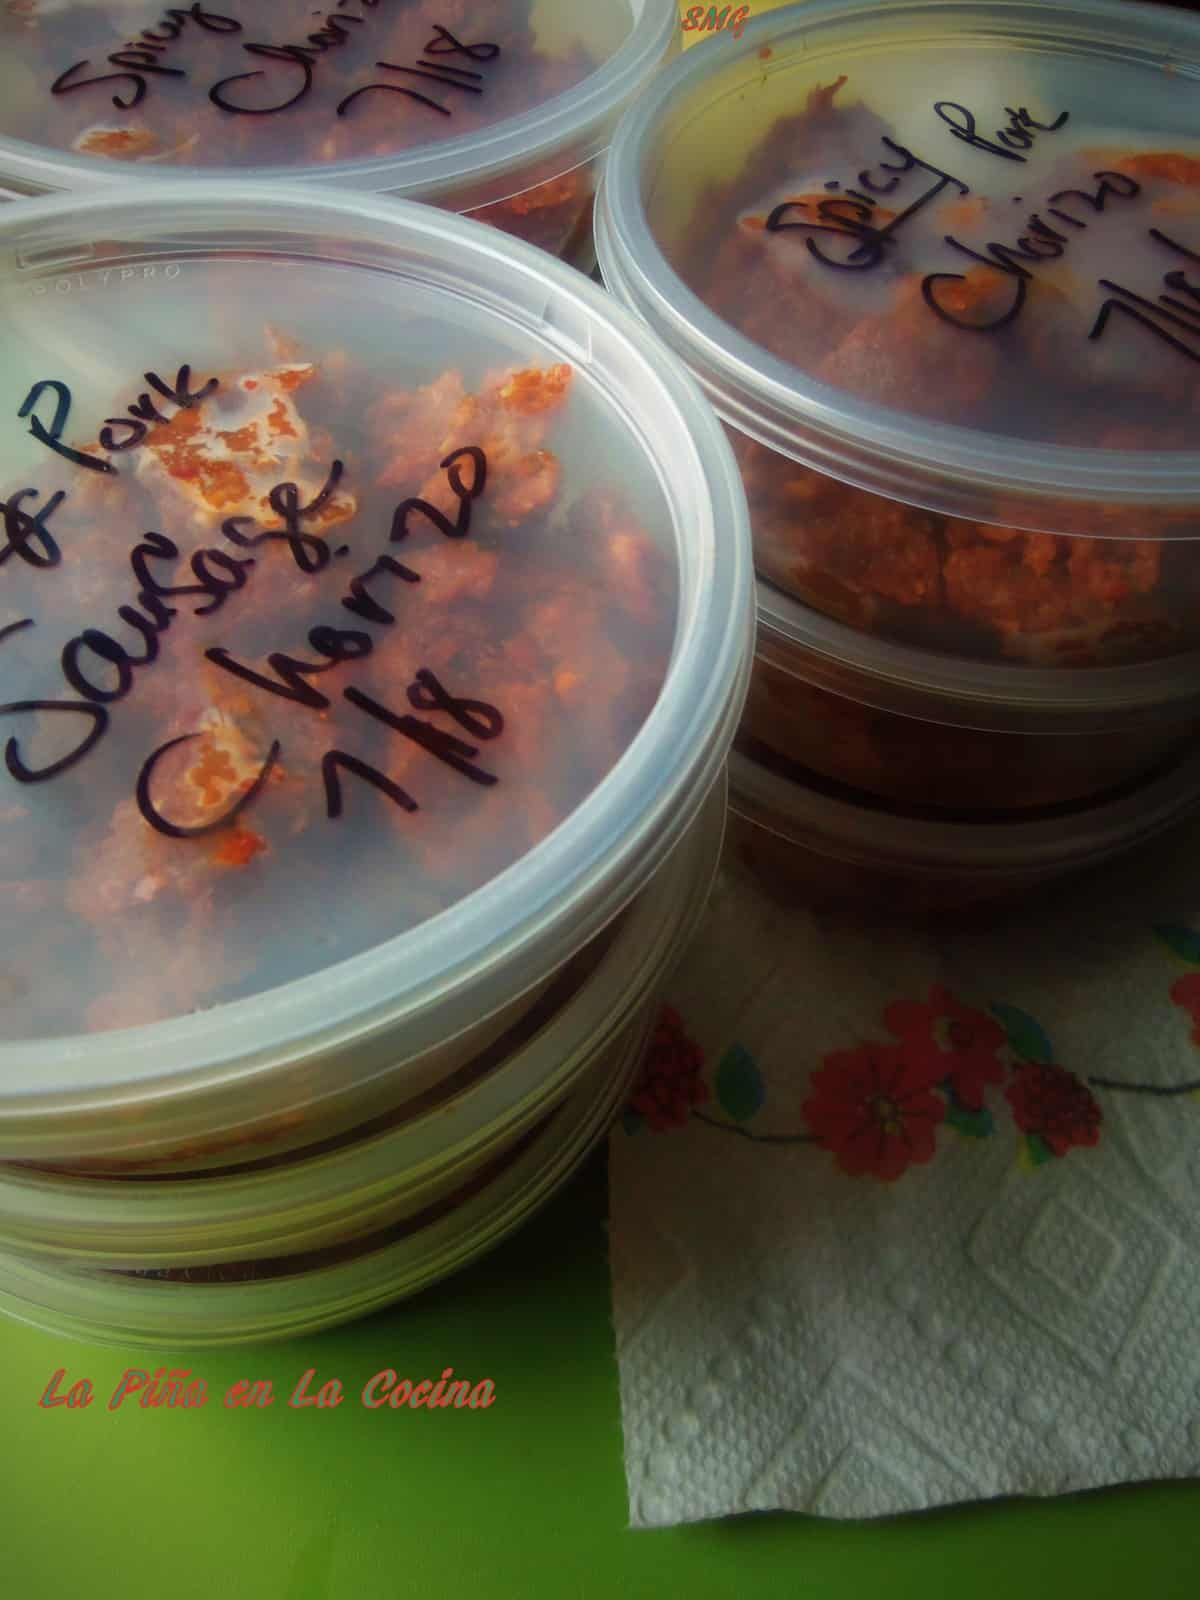 I found these inexpensive storage containers at a restuarant suply store. Work great for freezing the chorizo.